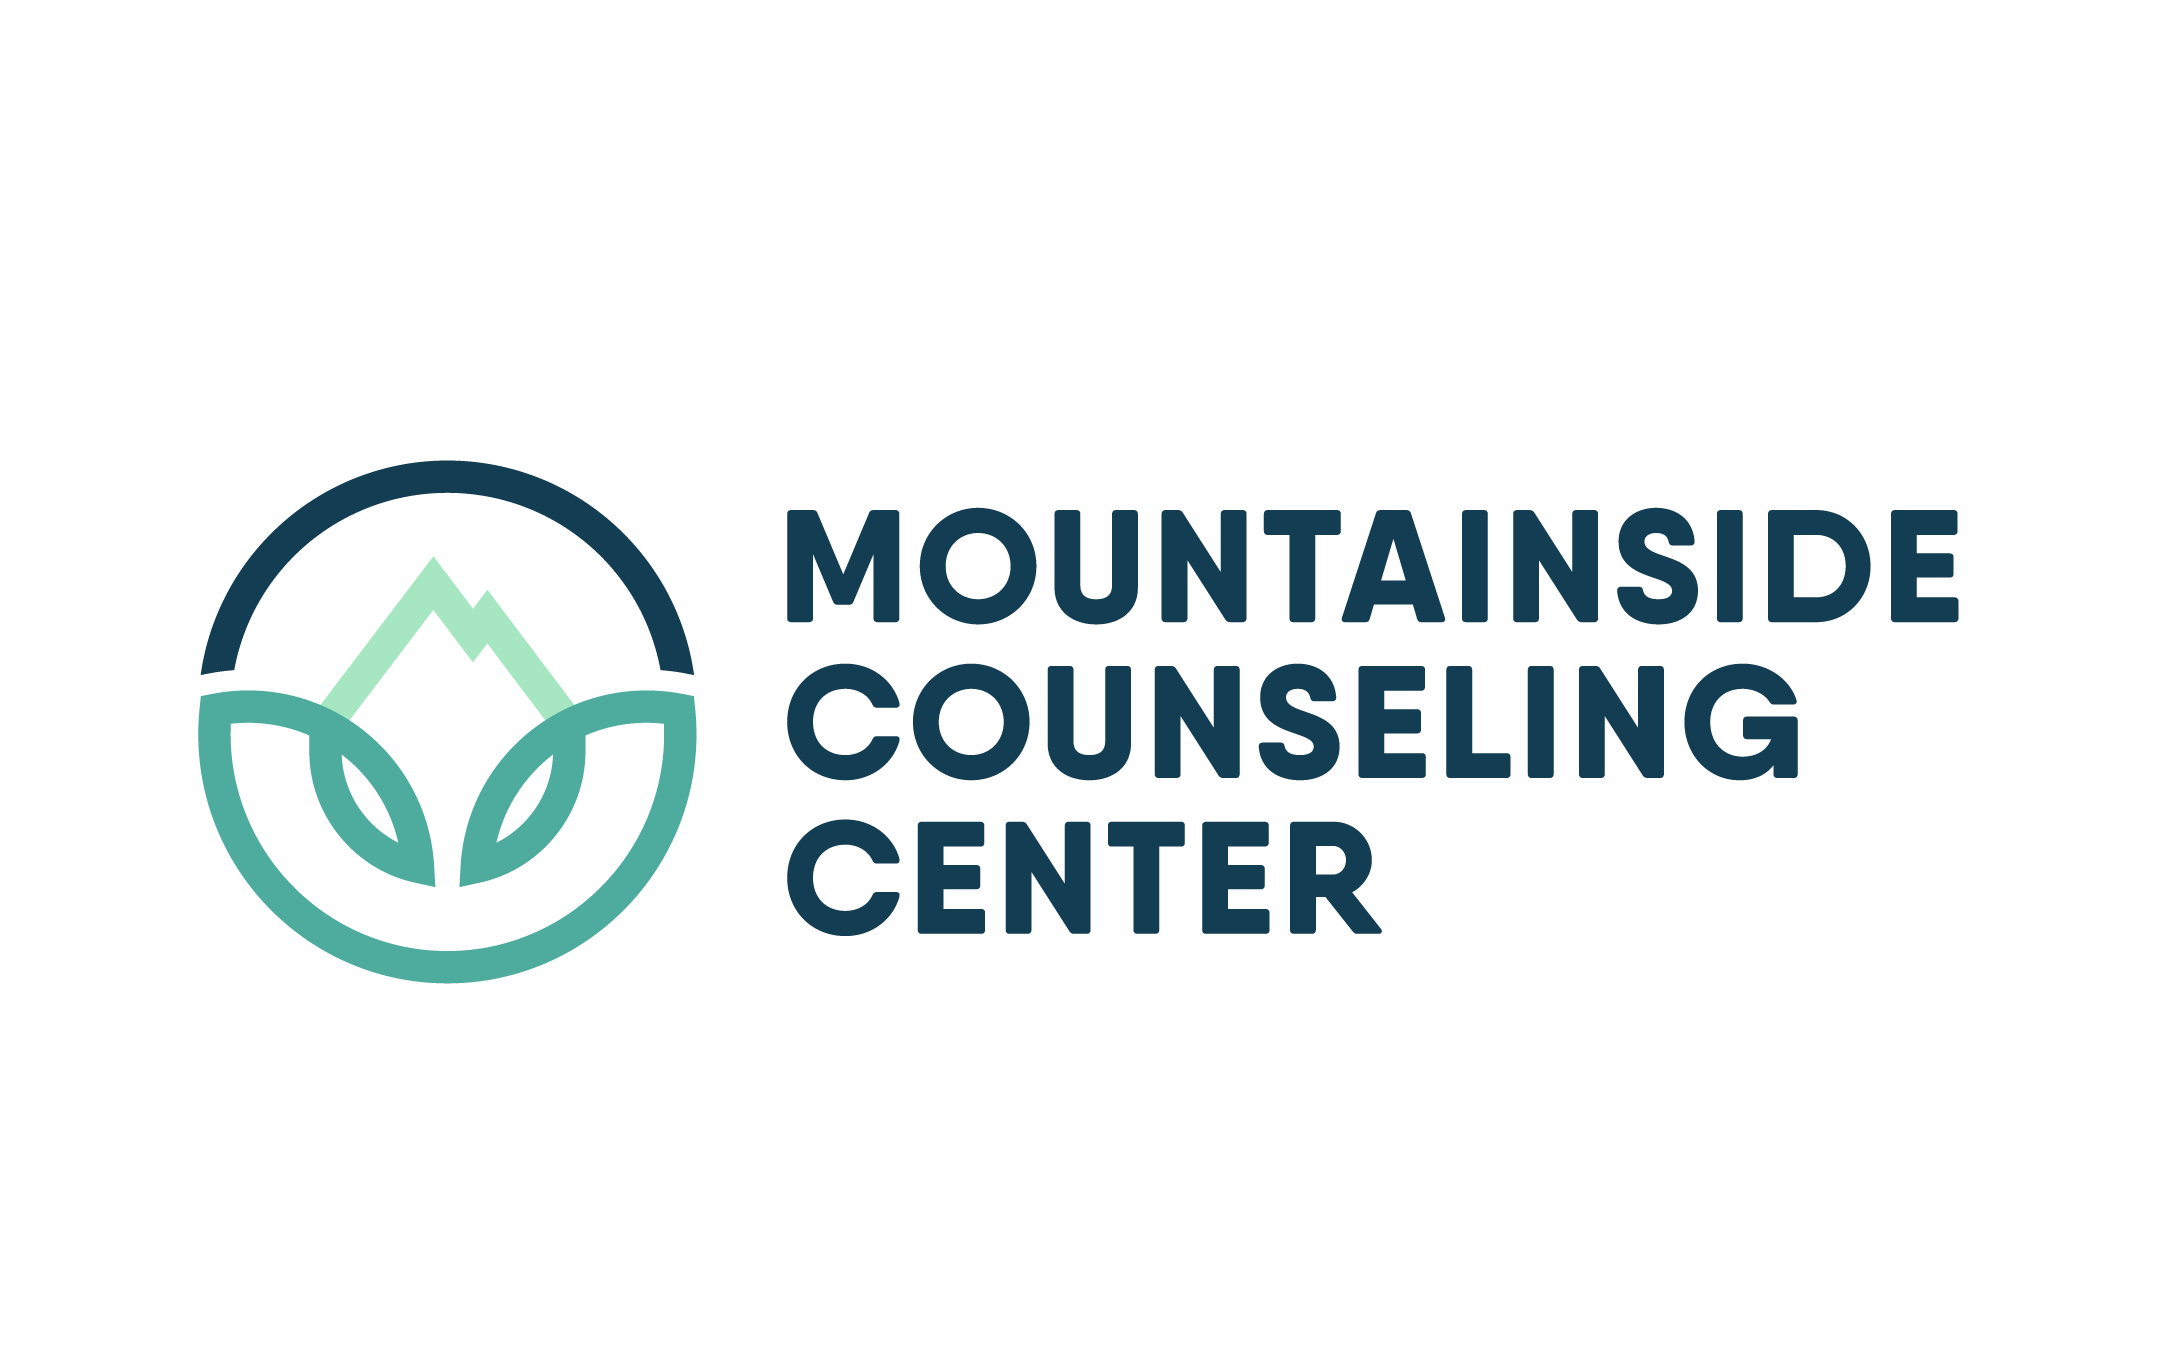 Mountainside Counseling Center